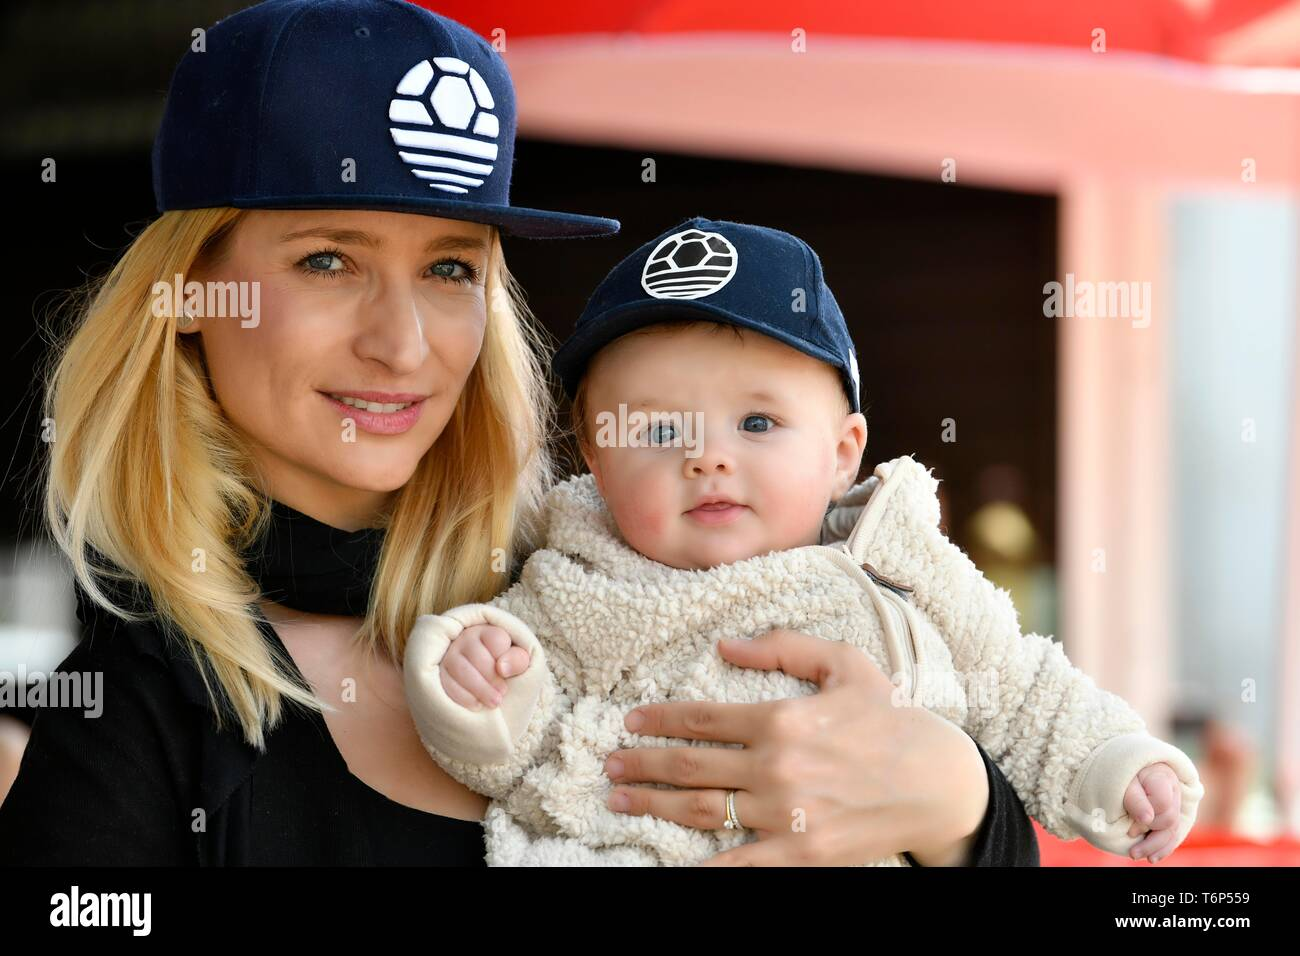 Mother and baby, 5 months, with the same caps, Baden-Wurttemberg, Germany - Stock Image